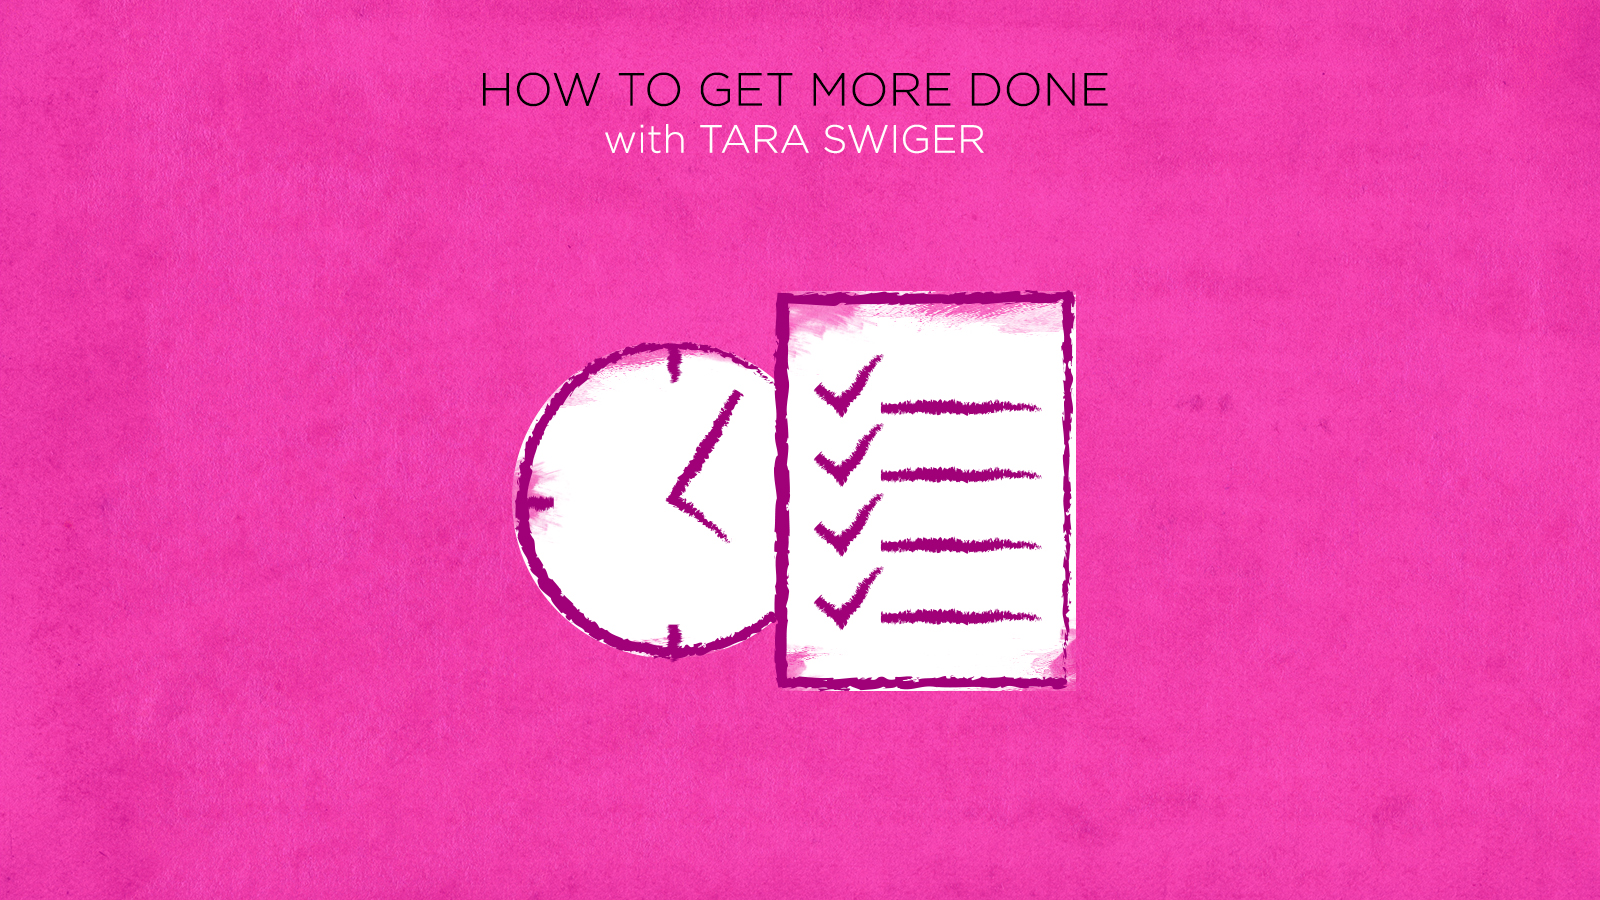 Learn how to get more done! Check out Tara Swiger's productivity class on CreativeLive.